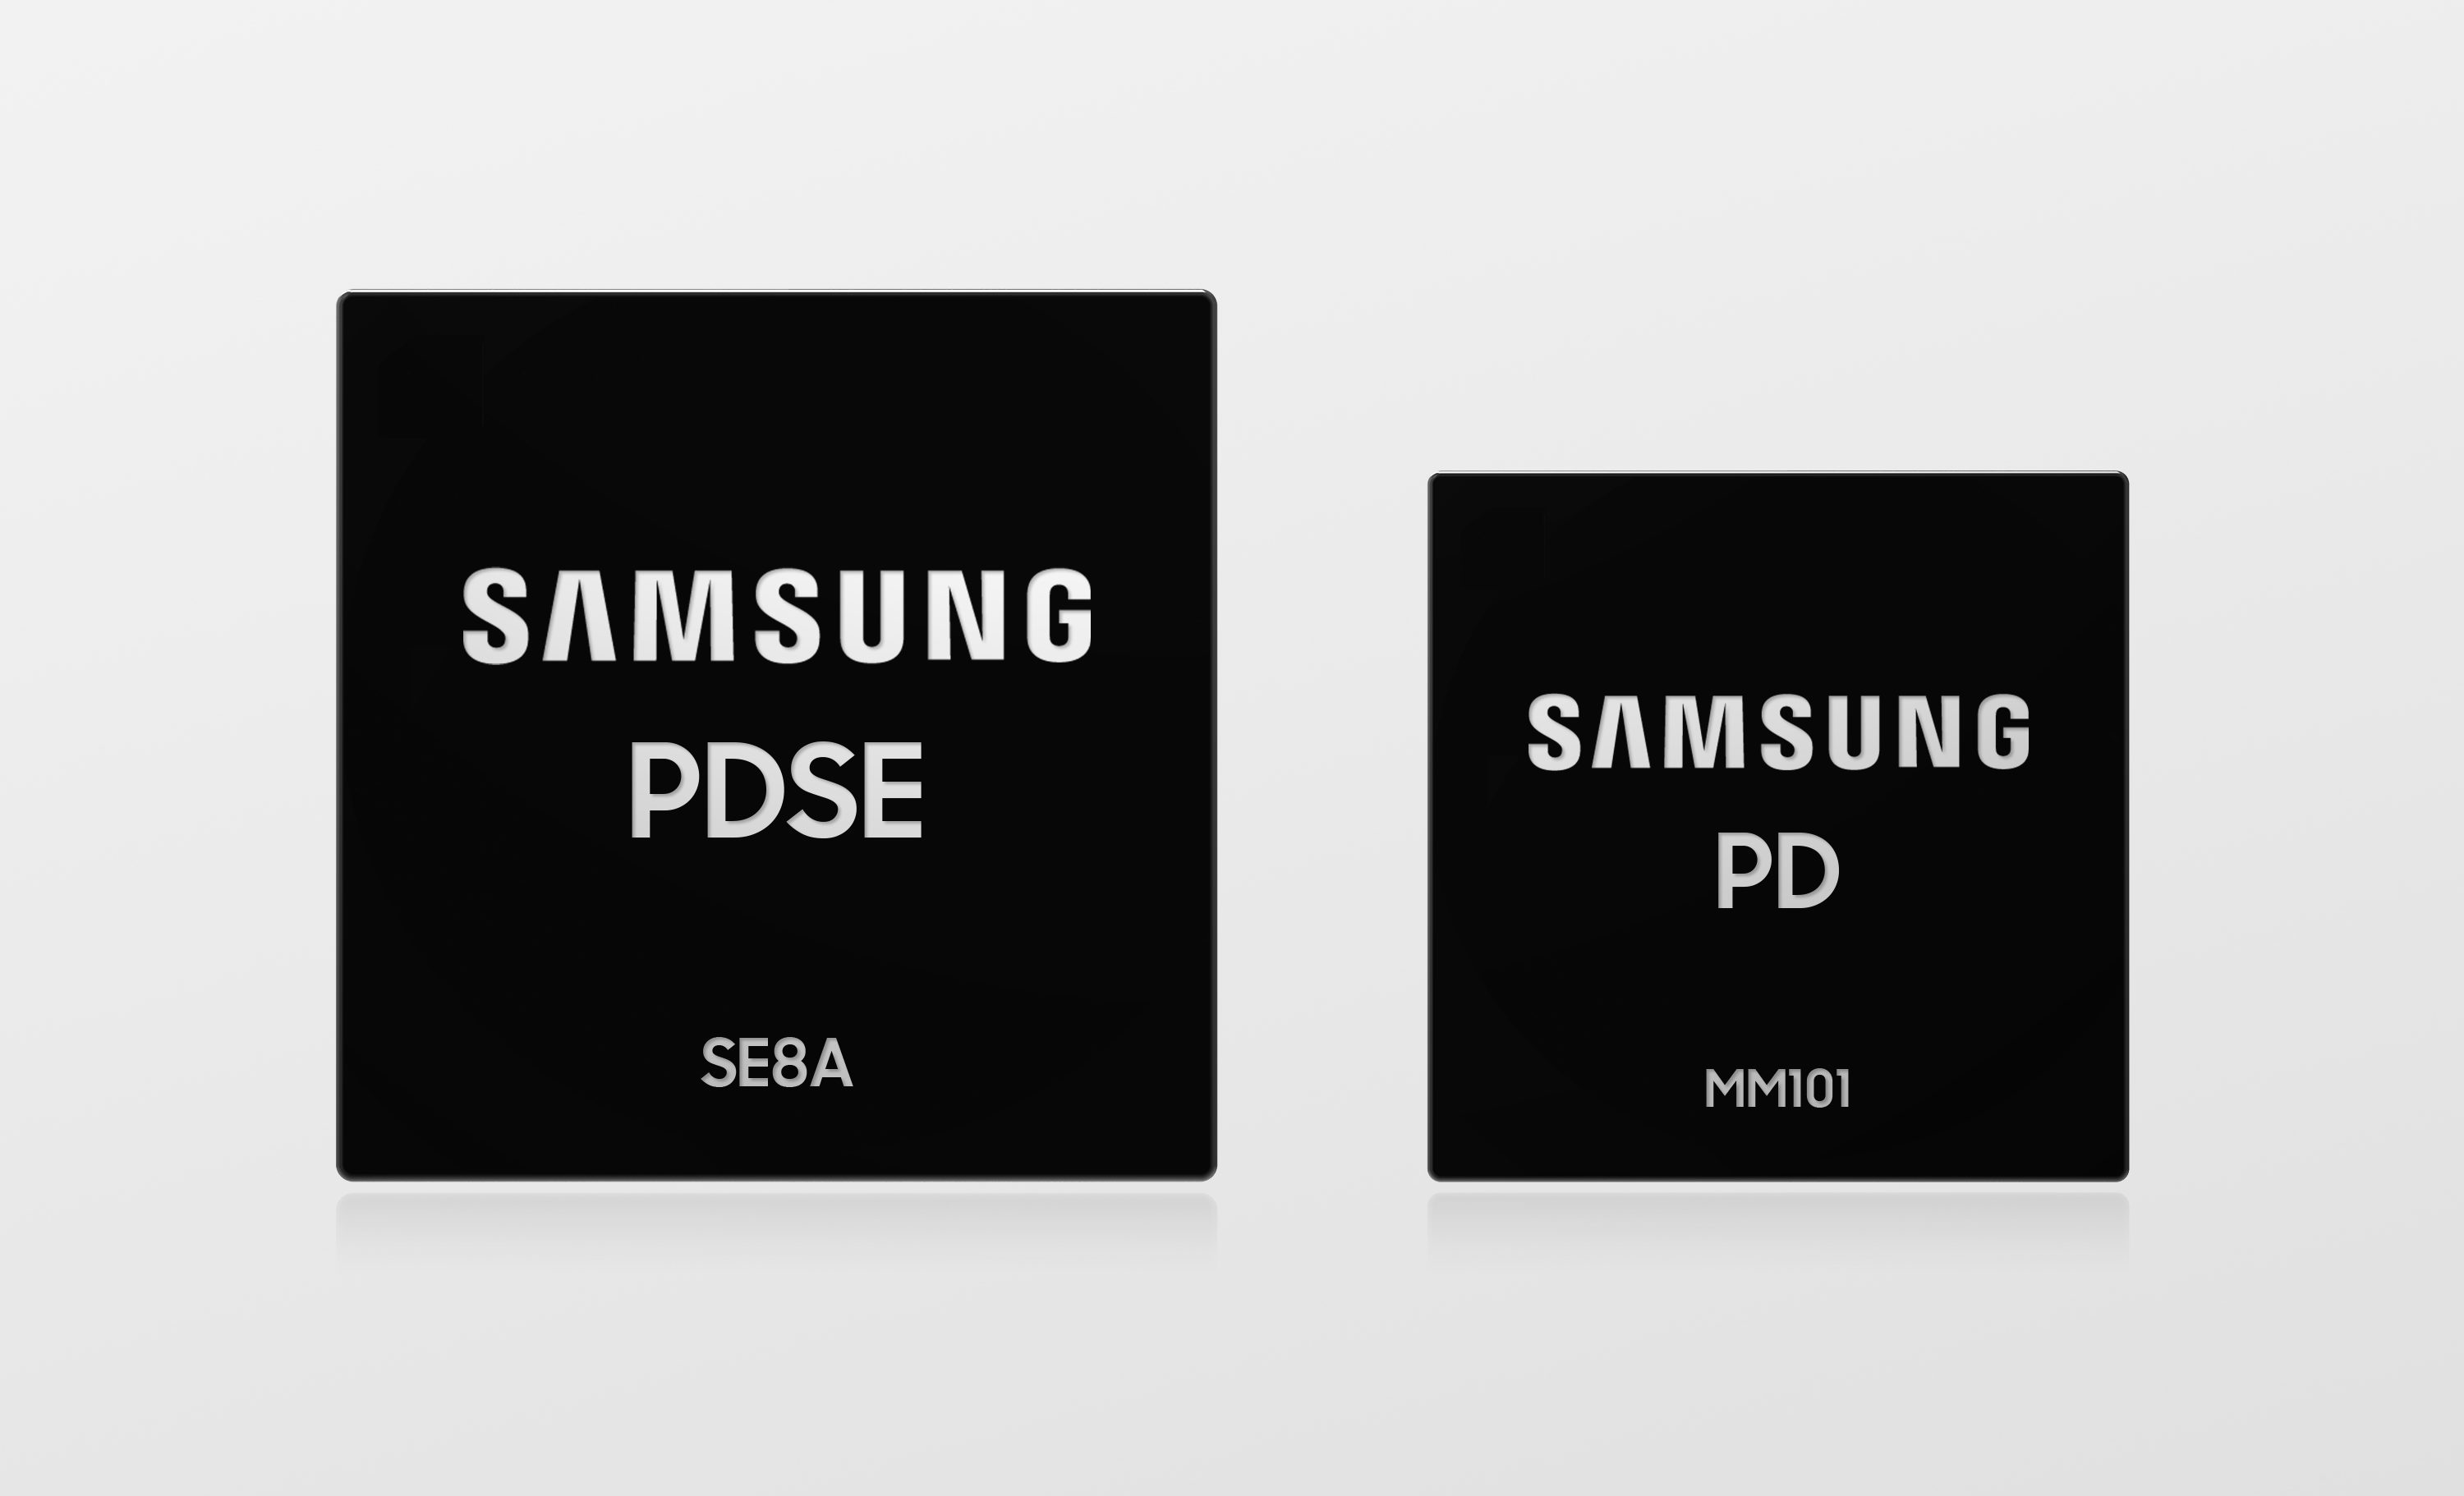 Samsung's Two New USB PD Controllers support up to 100W-charging